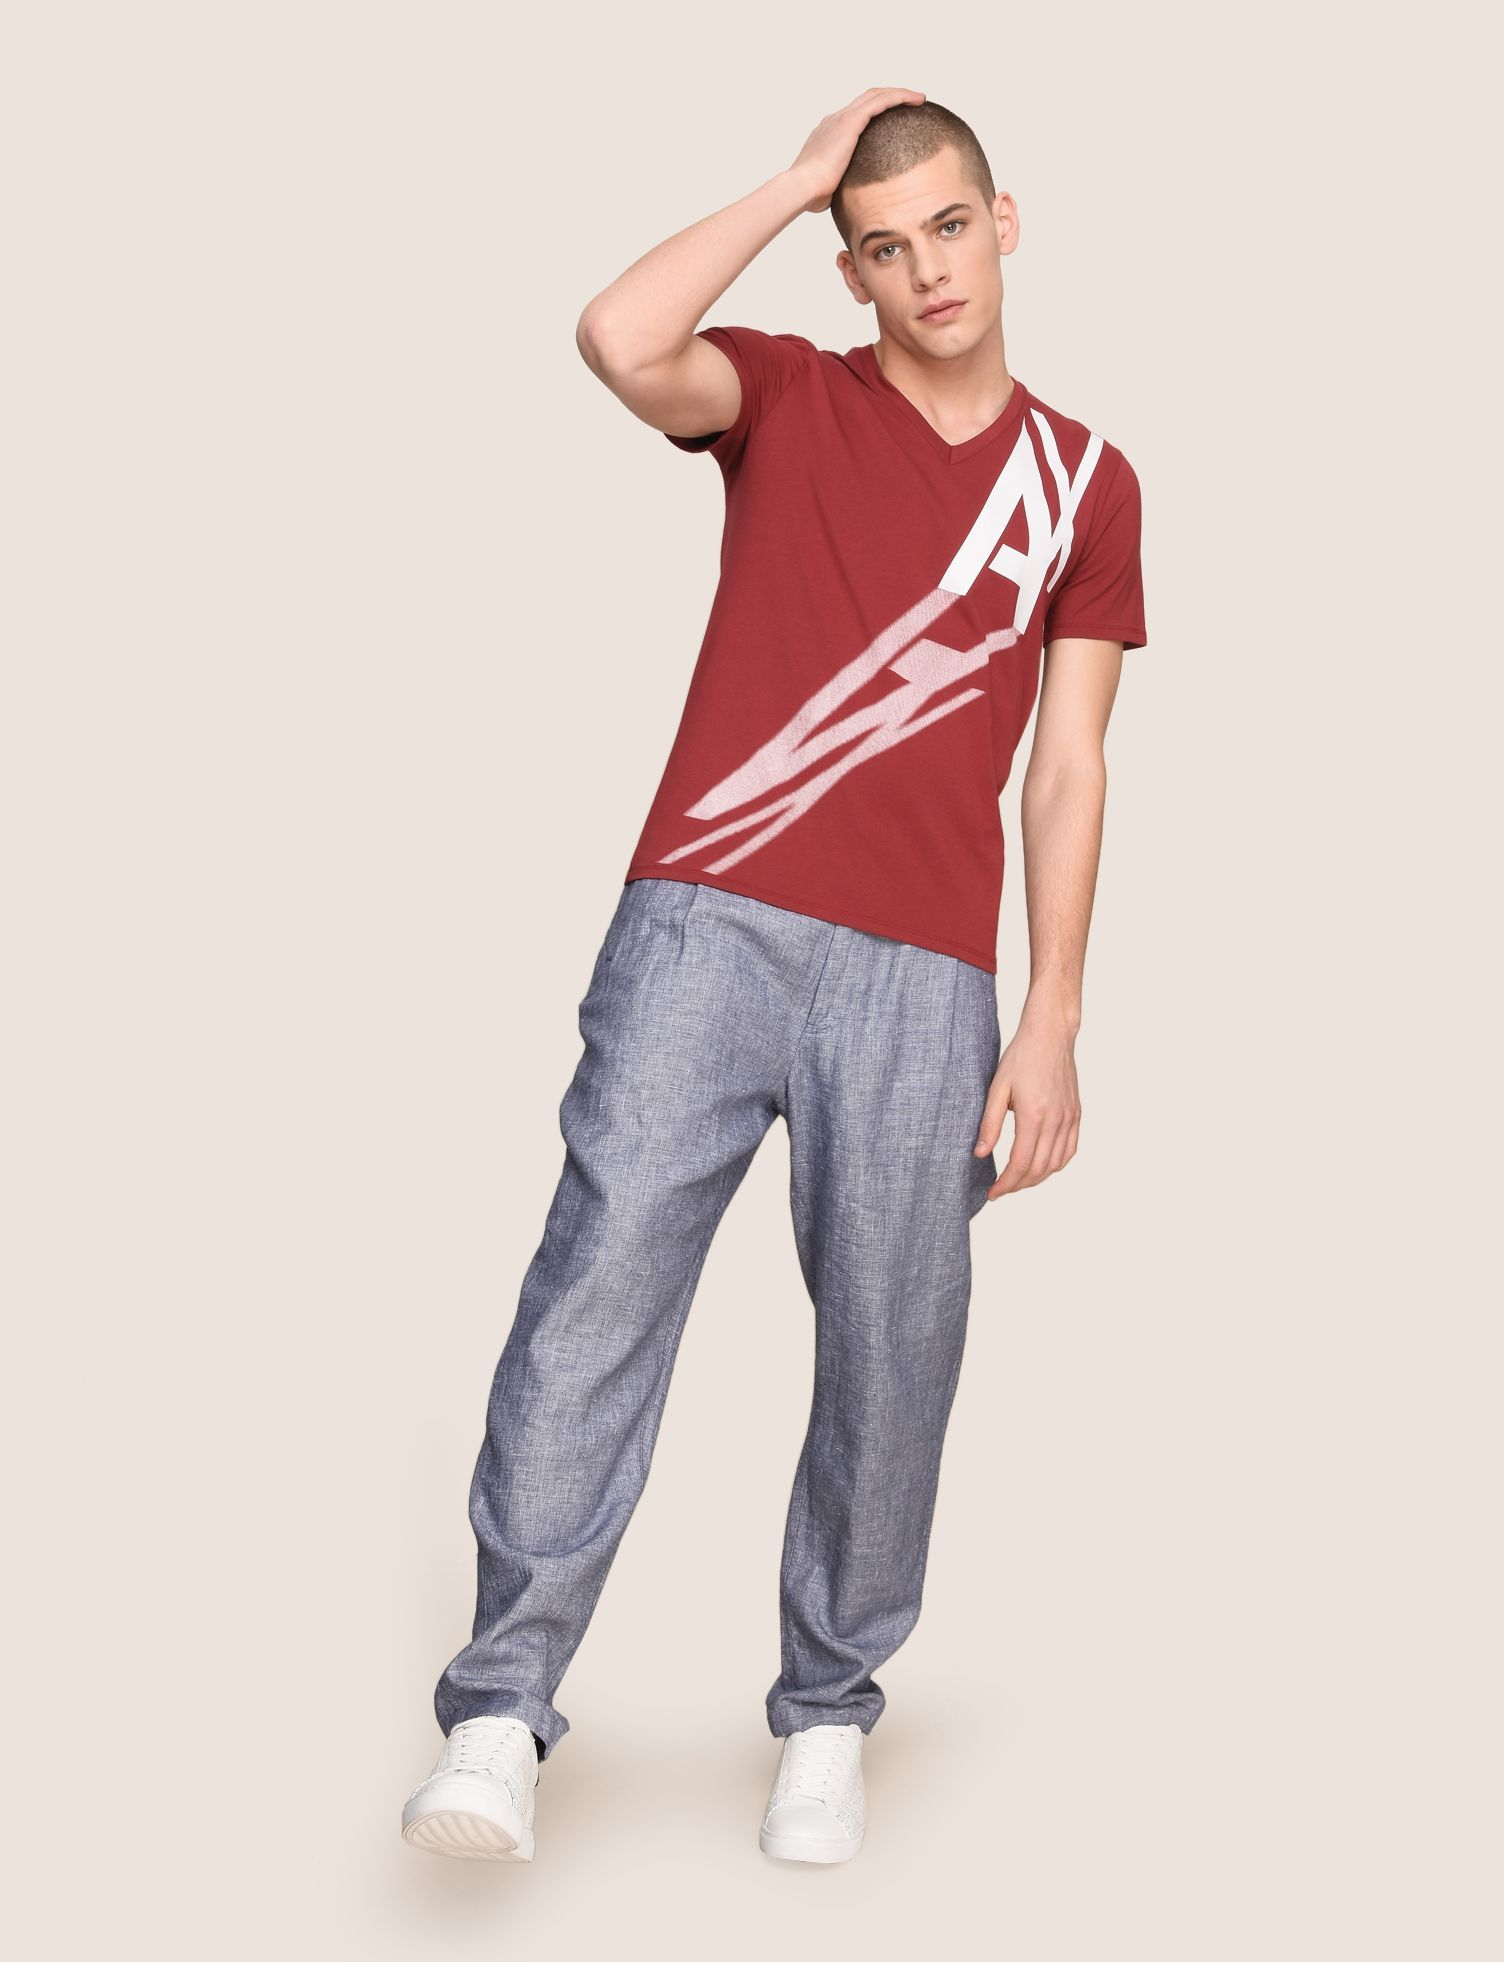 Armani exchange cast a shadow v neck tee logo t shirt for